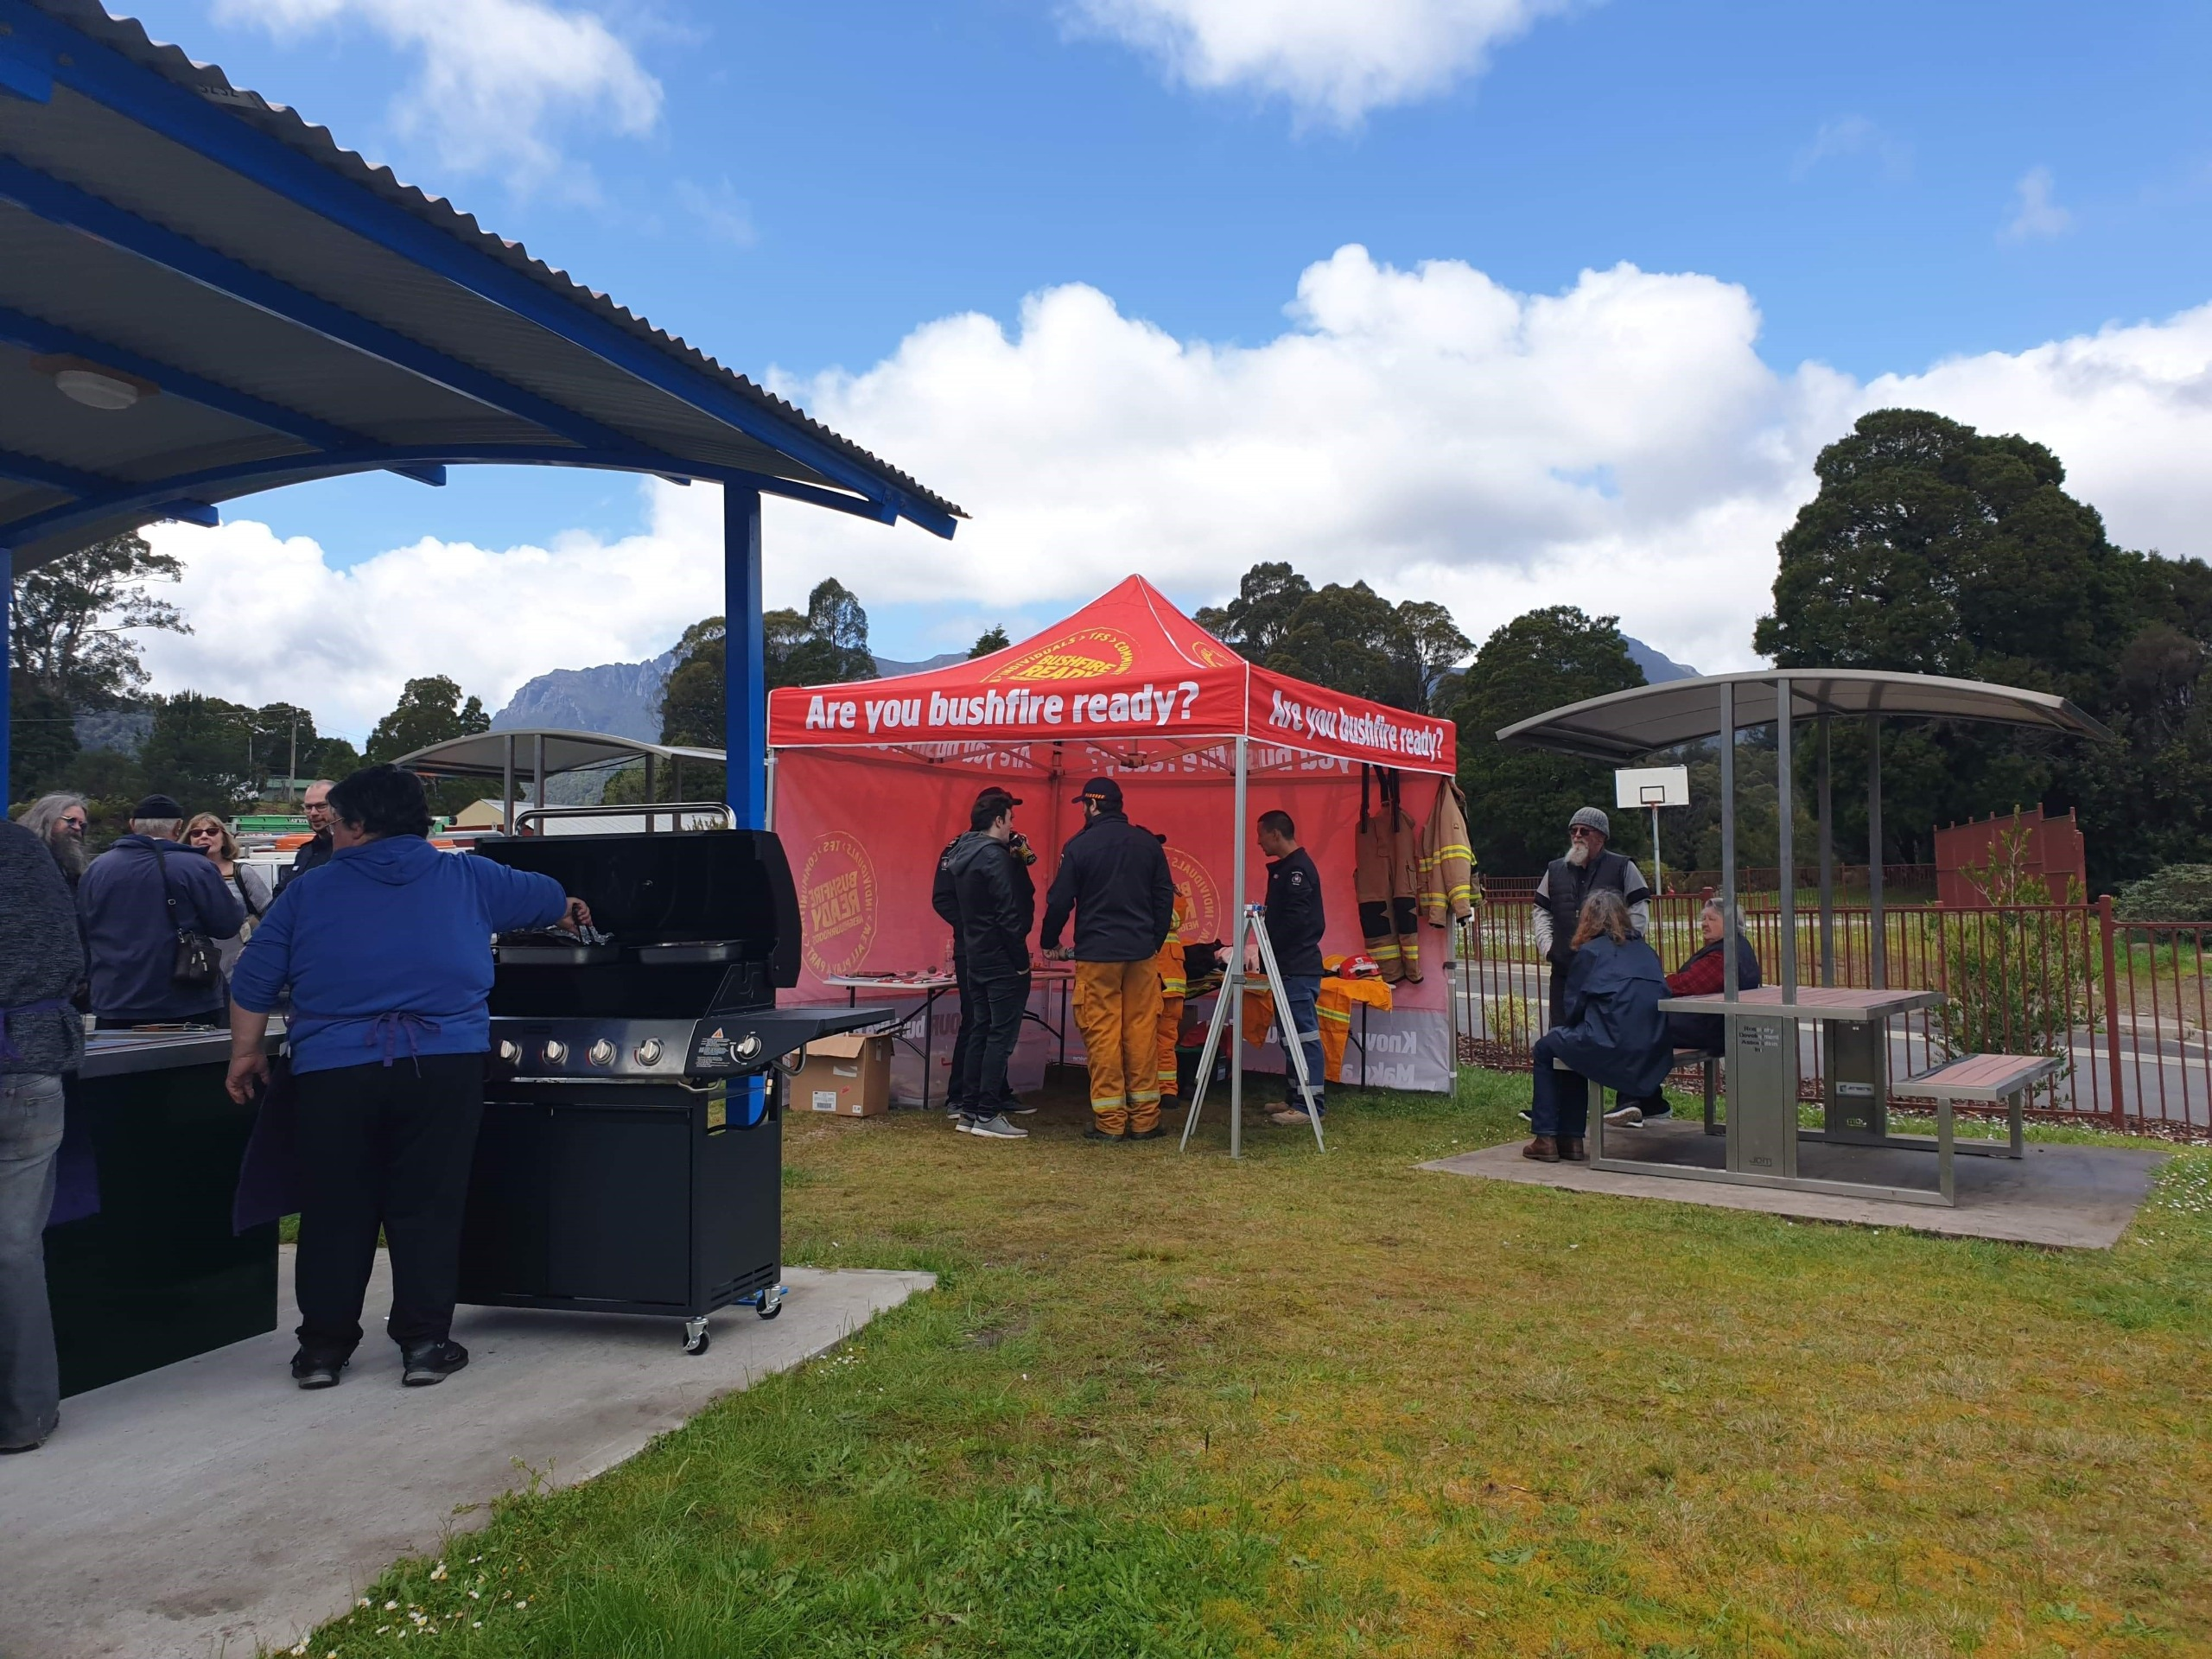 community members getting bushfire -ready info at marquee